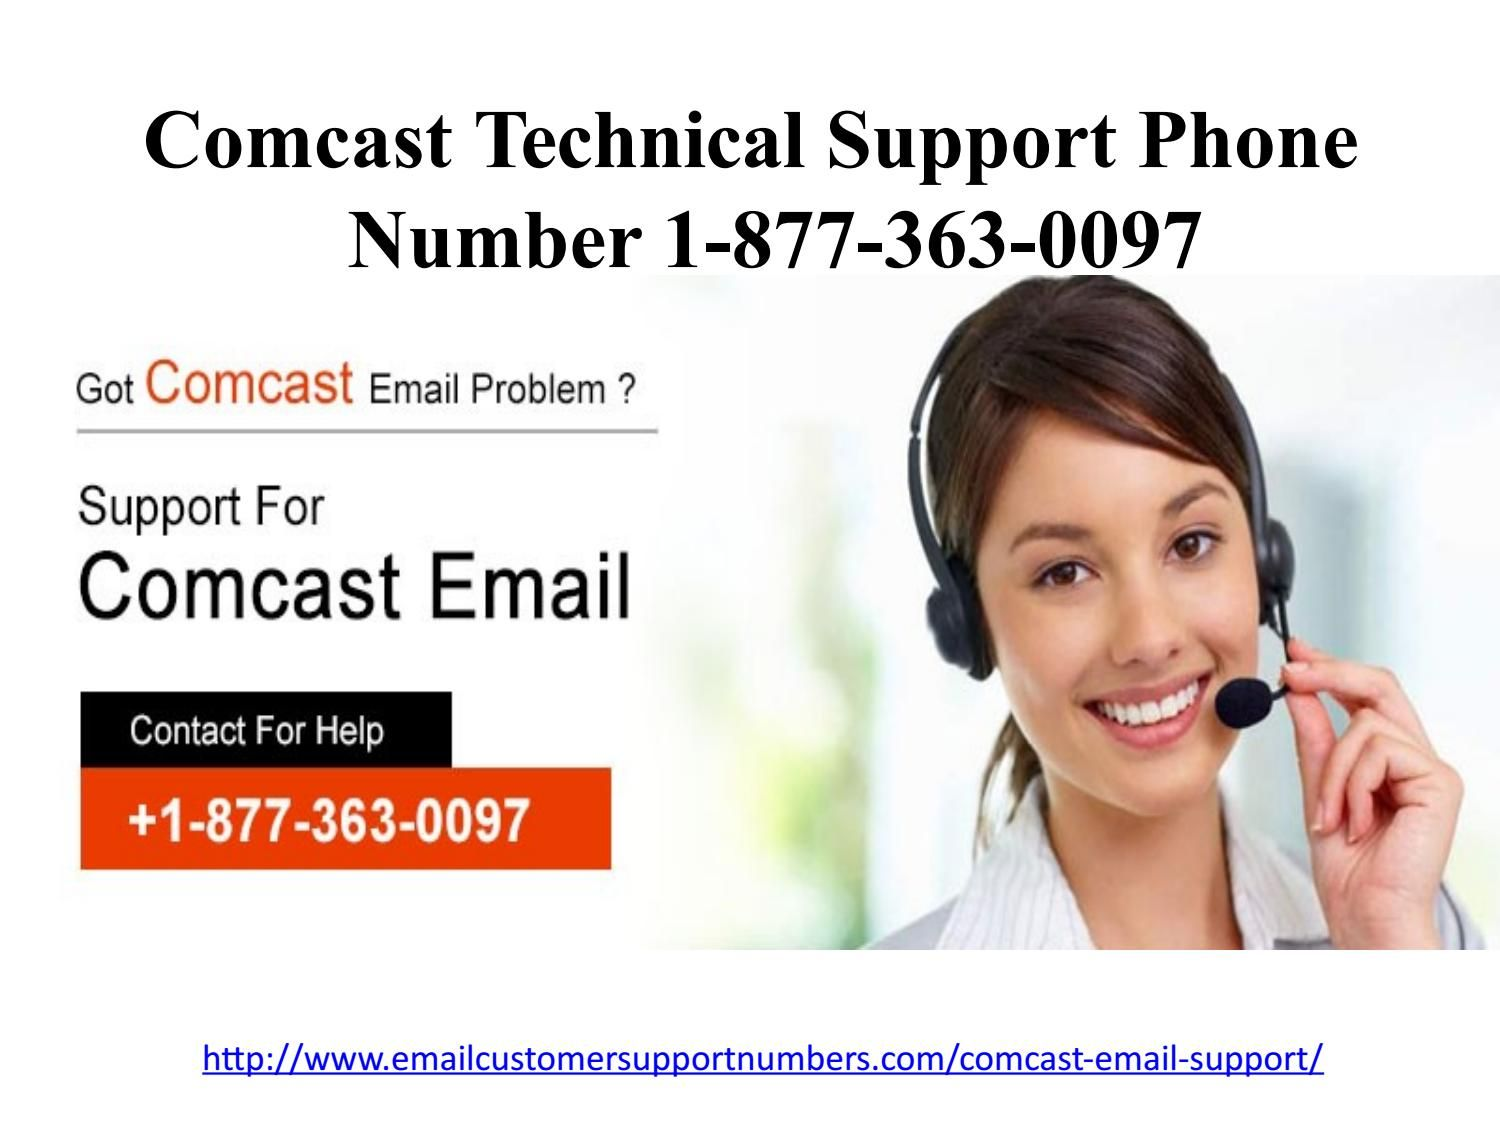 Comcast Technical Support Number 1-877-363-0097 Email Customer Service  Number